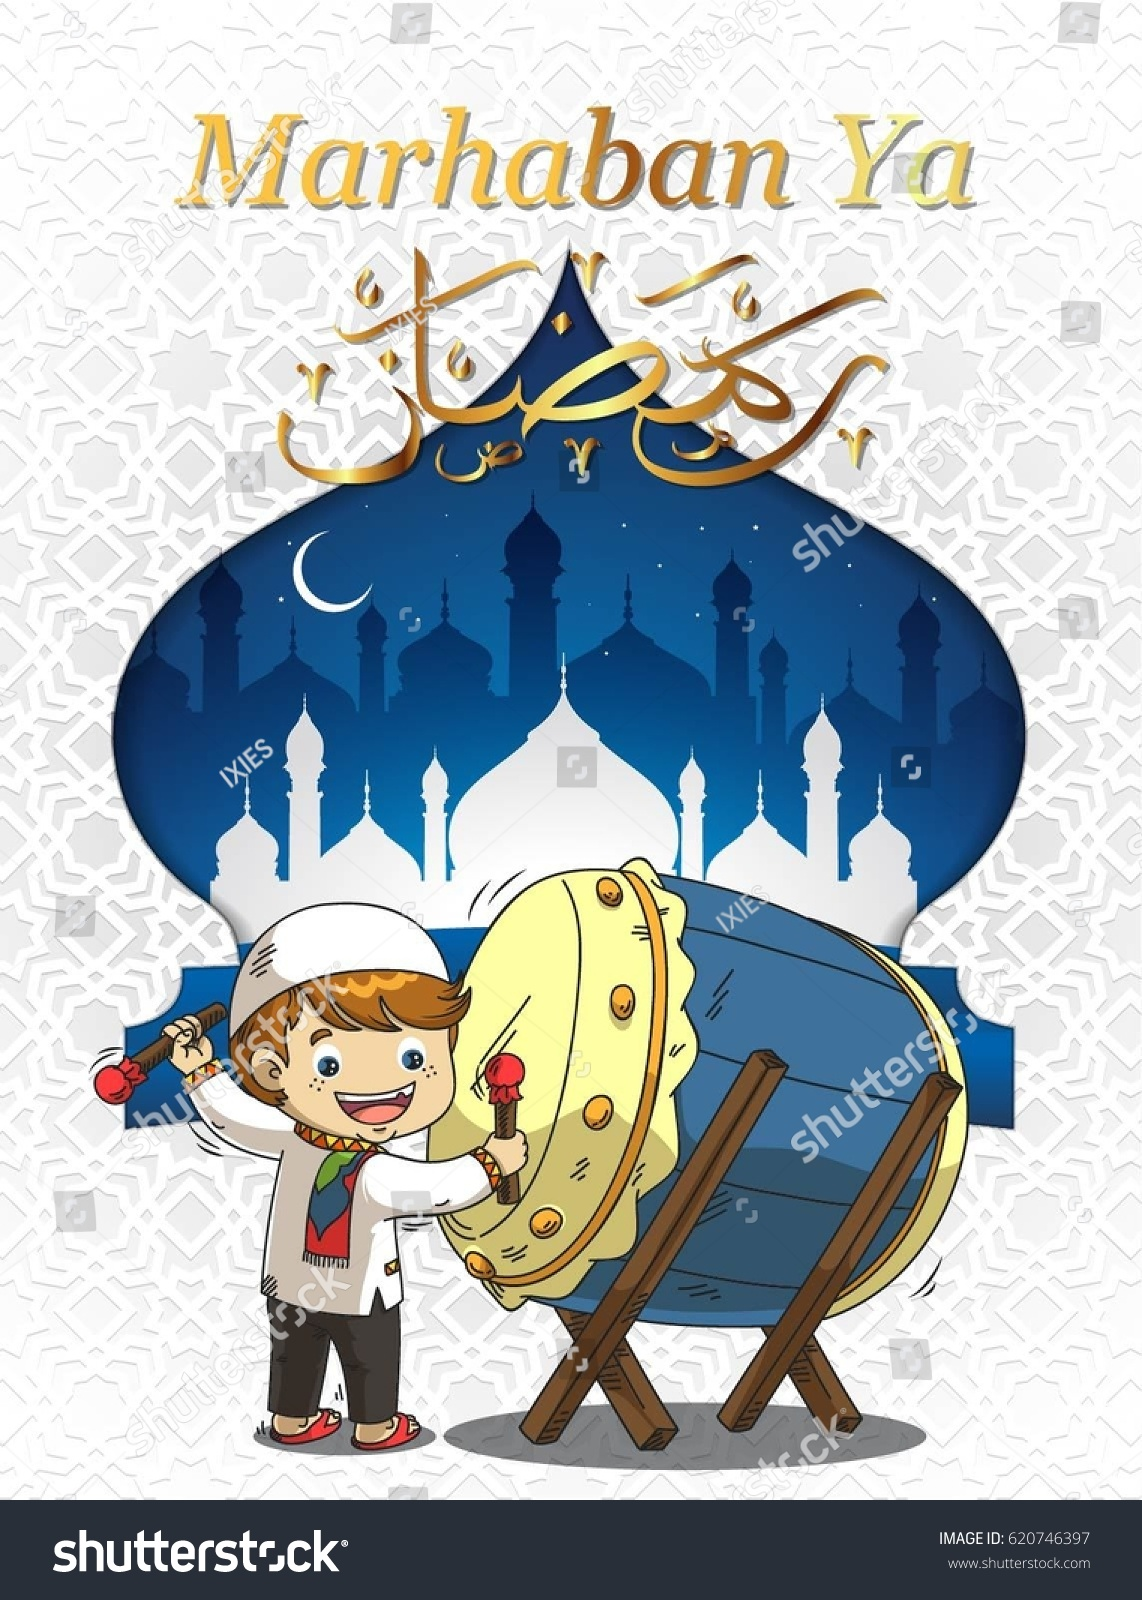 Marhaban Ya Ramadhan Kartun : marhaban, ramadhan, kartun, Ramadhan, Kareem, Cartoon, Playing, Bedug, Stock, Vector, (Royalty, Free), 620746397